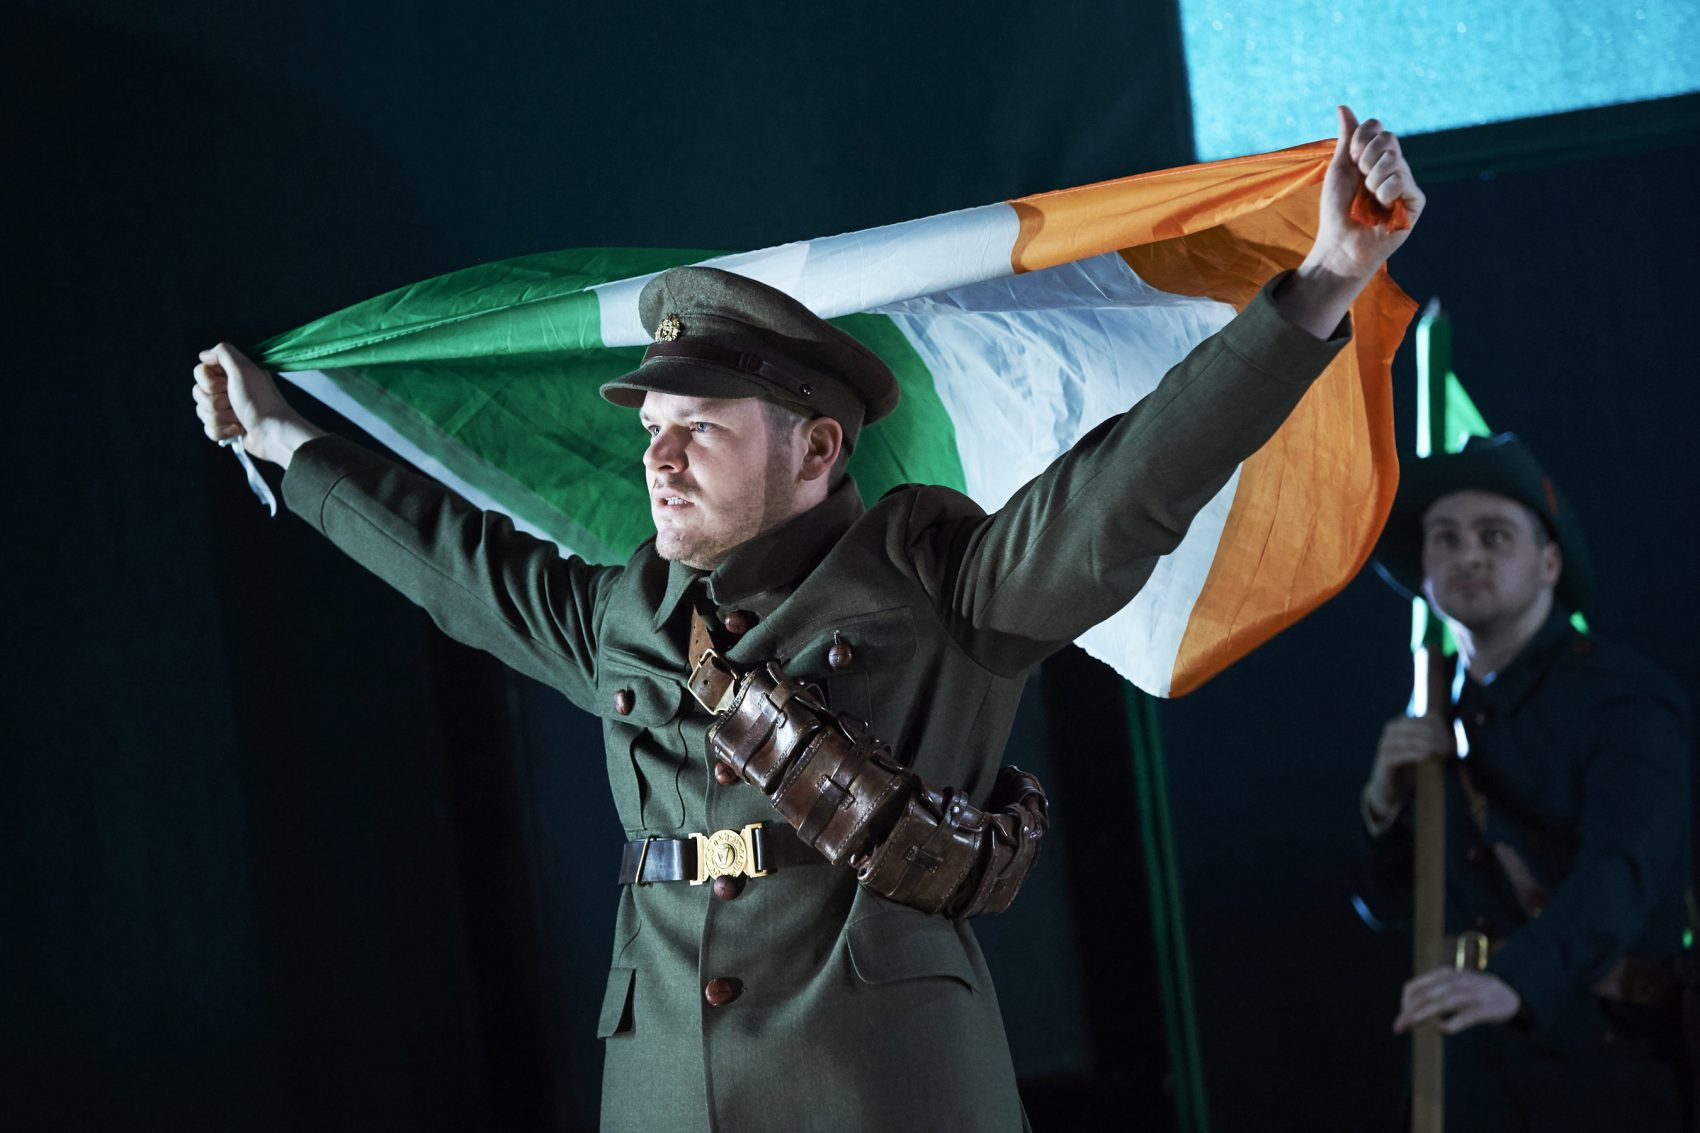 """Lloyd Cooney (Lt. Langon) and Liam Heslin (Capt. Brennan) in """"The Plough and the Stars"""" by Sean O'Casey, directed by Sean Holmes. (Courtesy of American Repertory Theater)"""